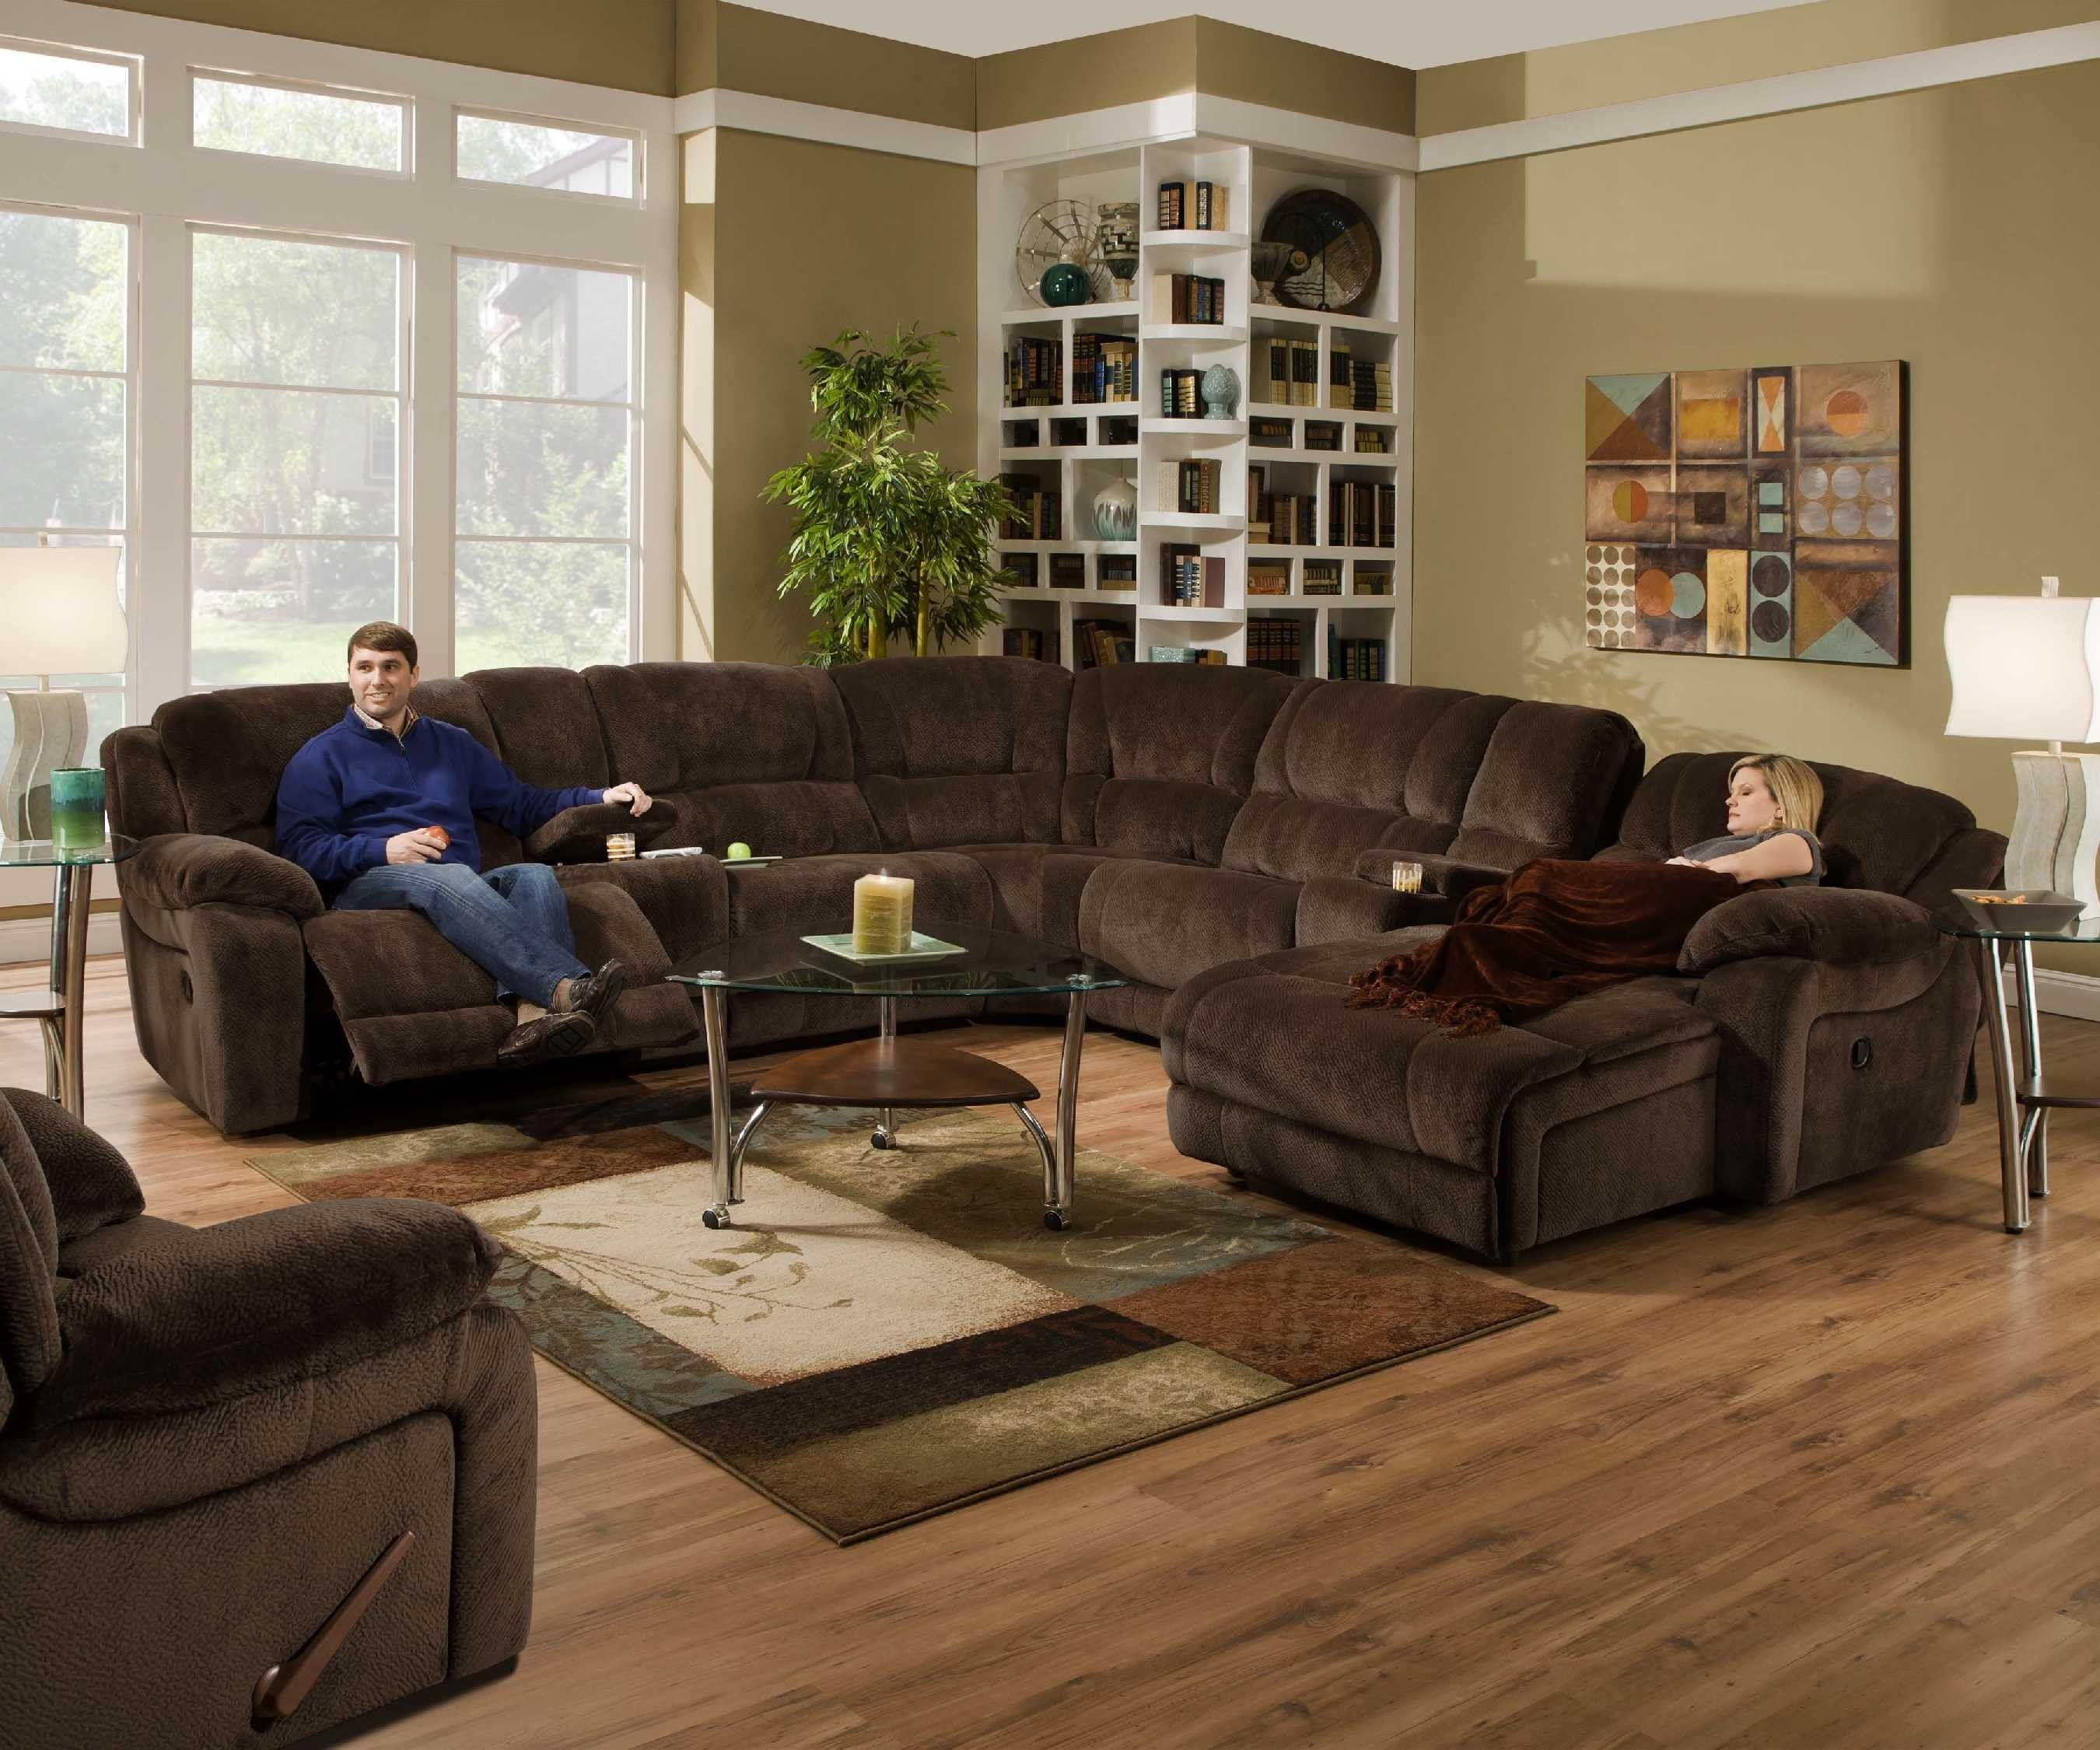 yippeeee sectional and recliner on layaway for the family room rh pinterest com